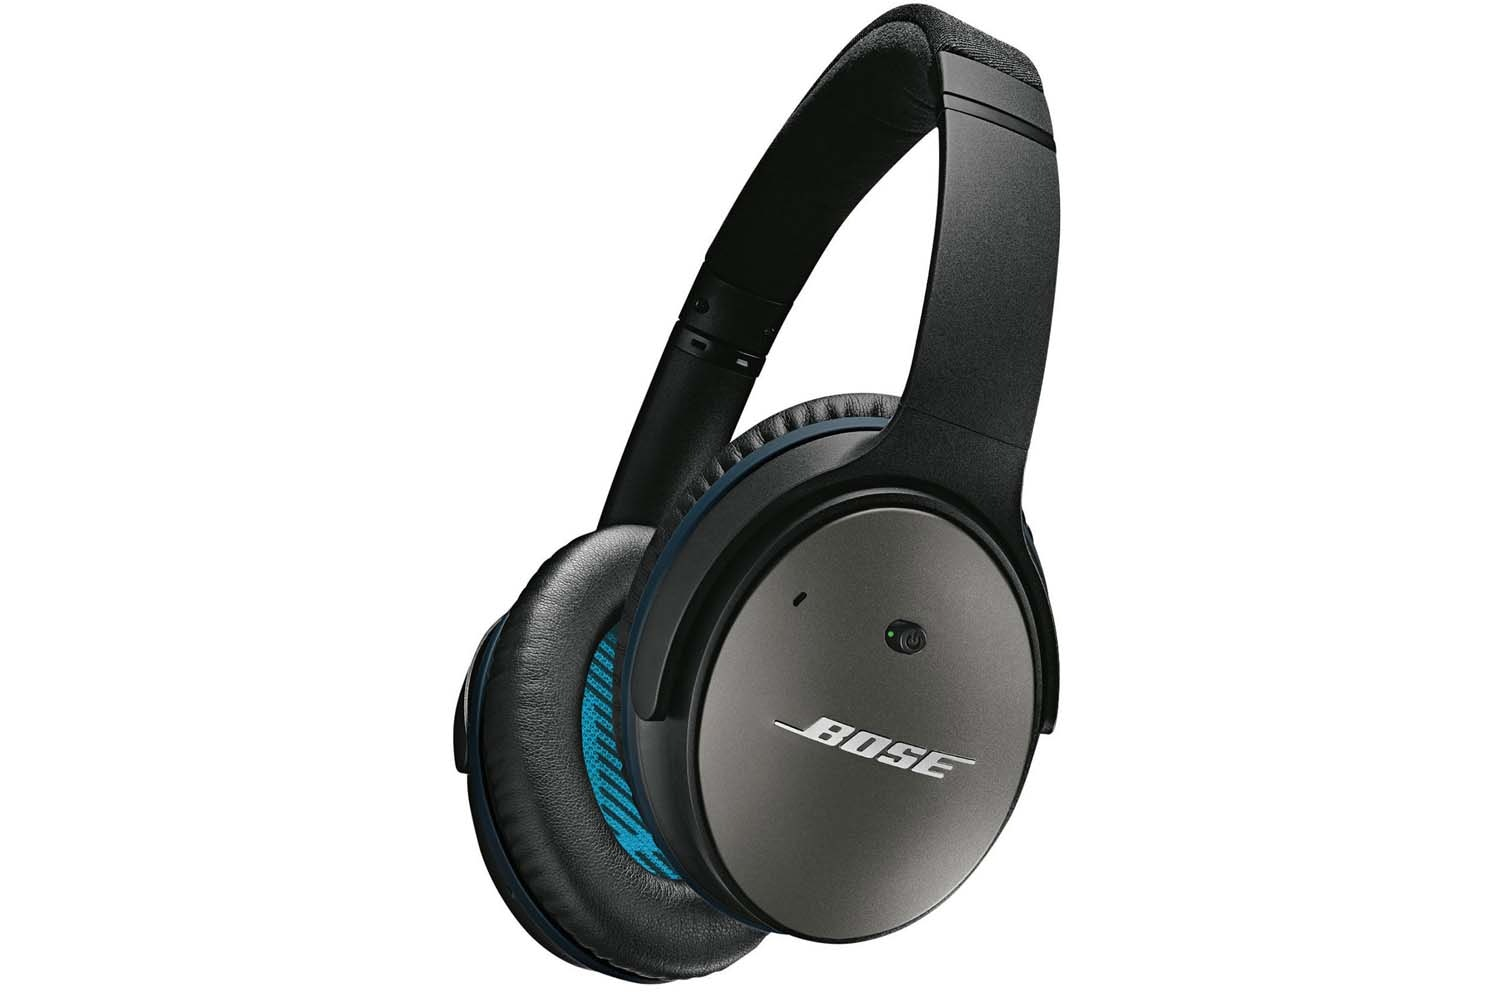 Bose Quiet Comfort 25 for Android |Black